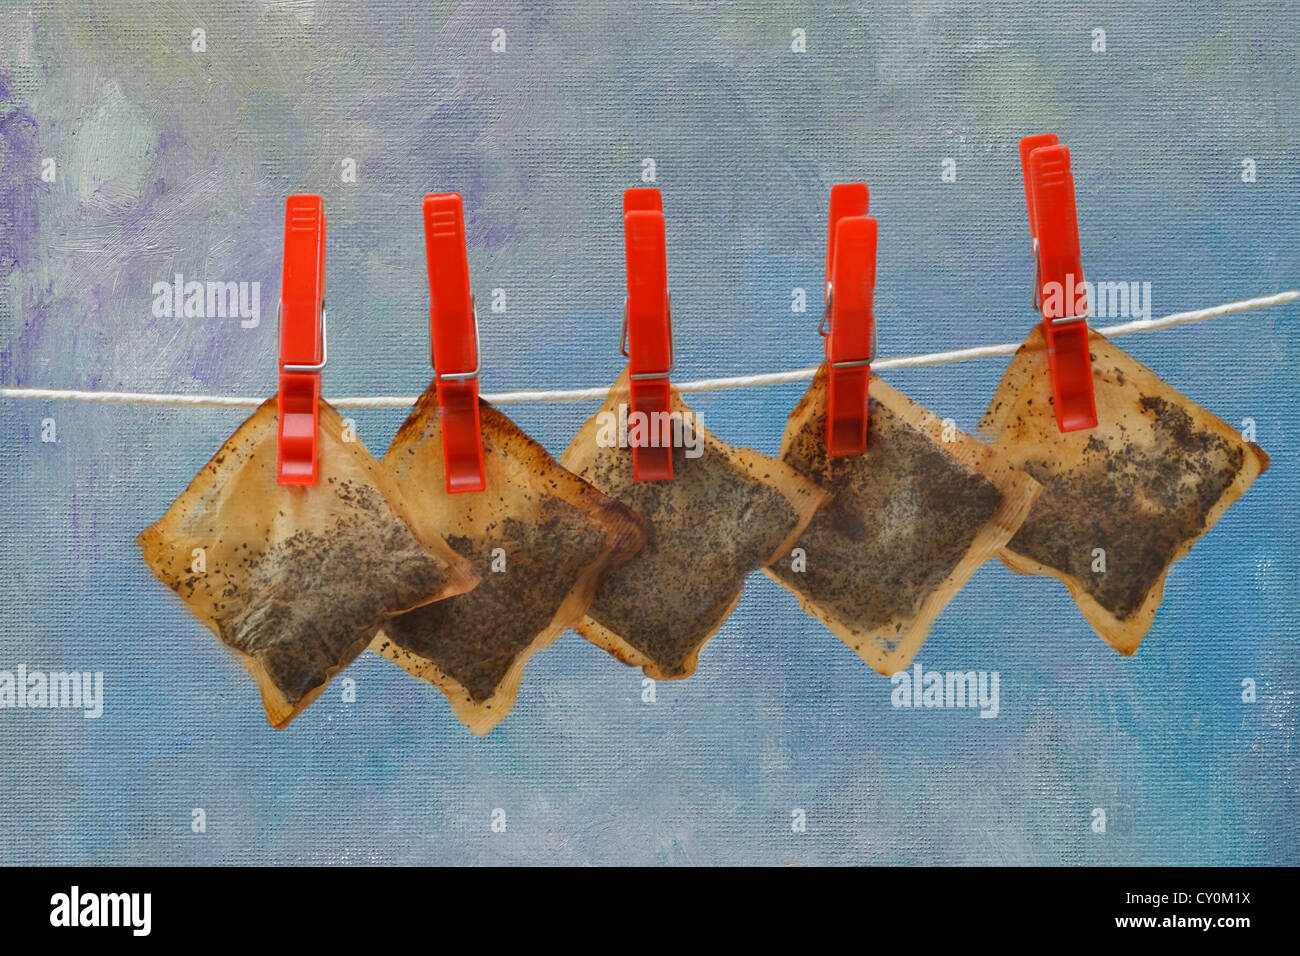 Saving money by reusing tea bags - Stock Image